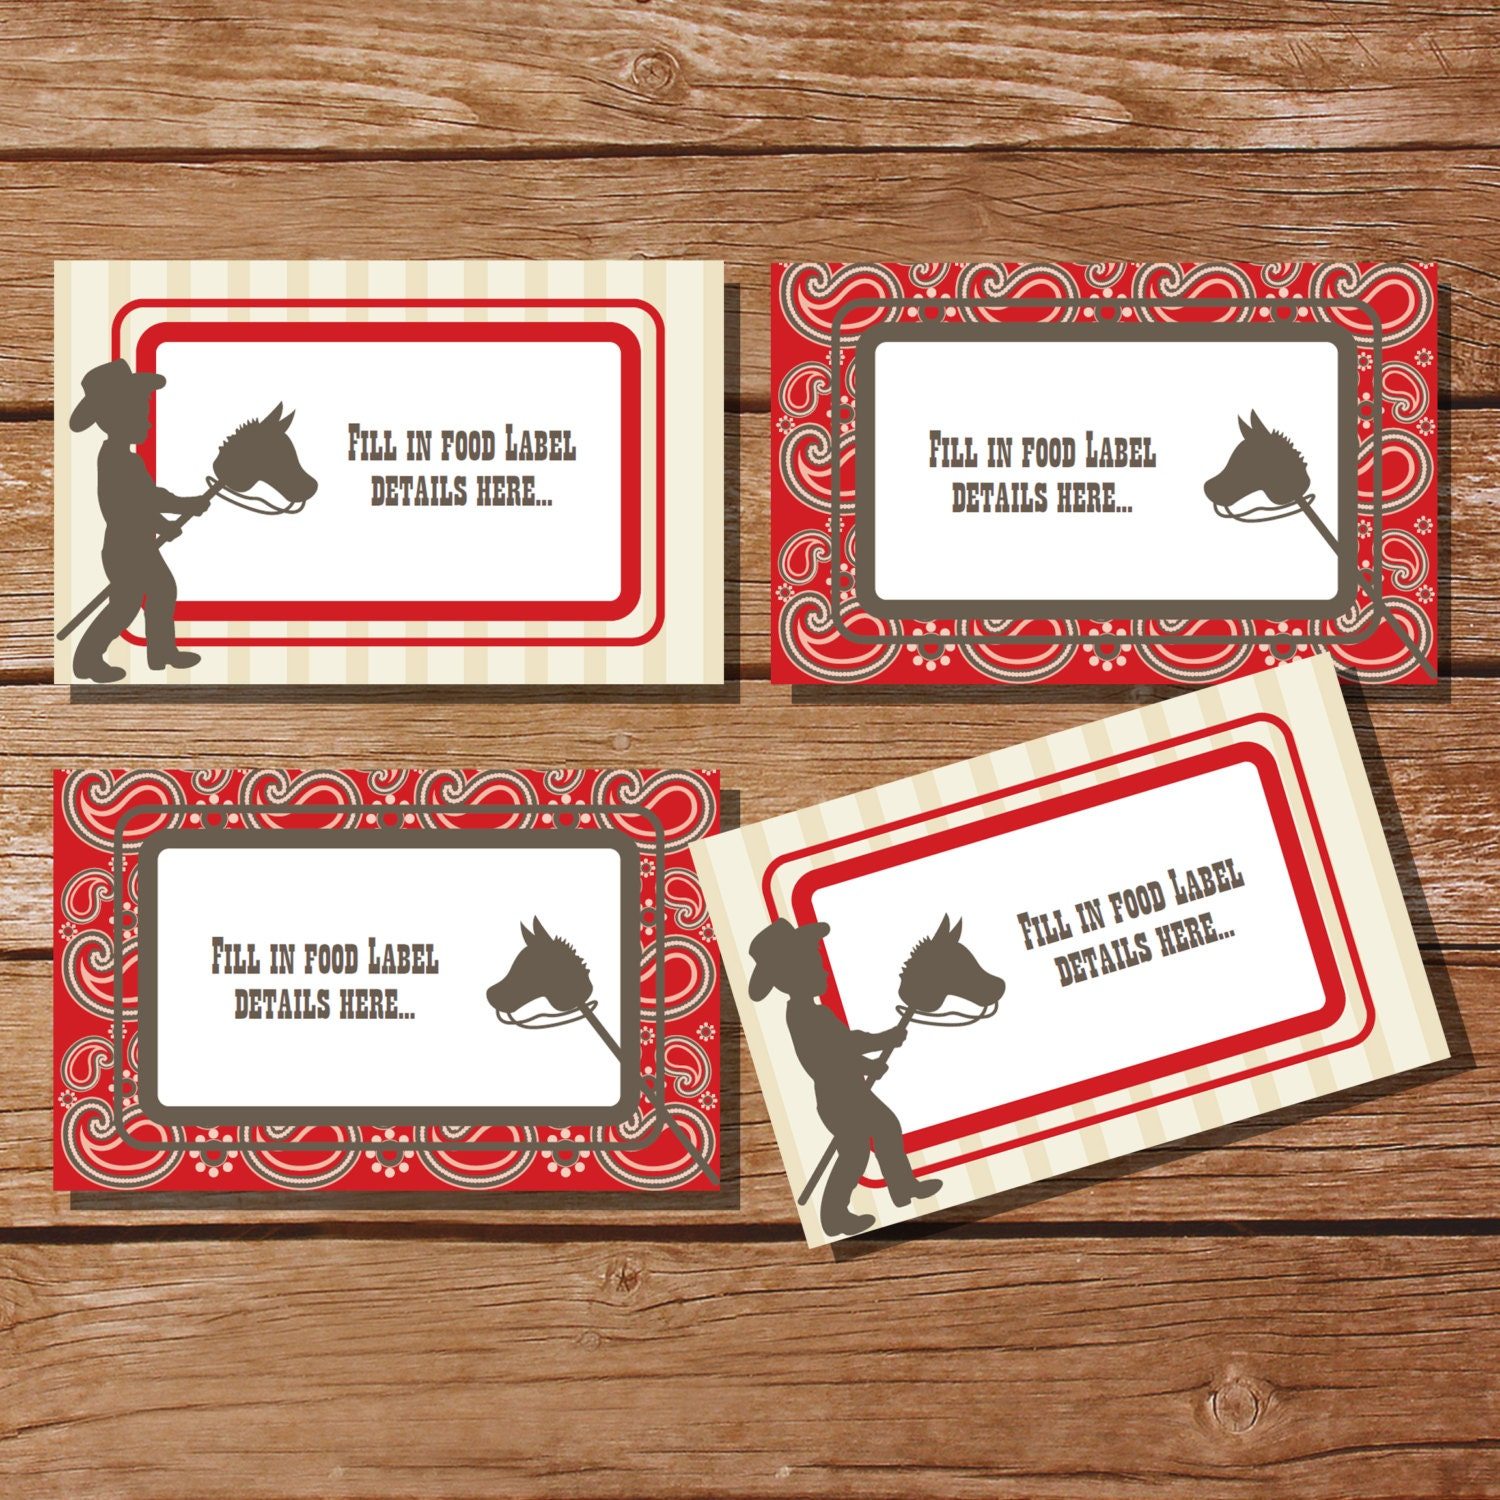 Thanksgiving Invitations Templates is great invitation sample